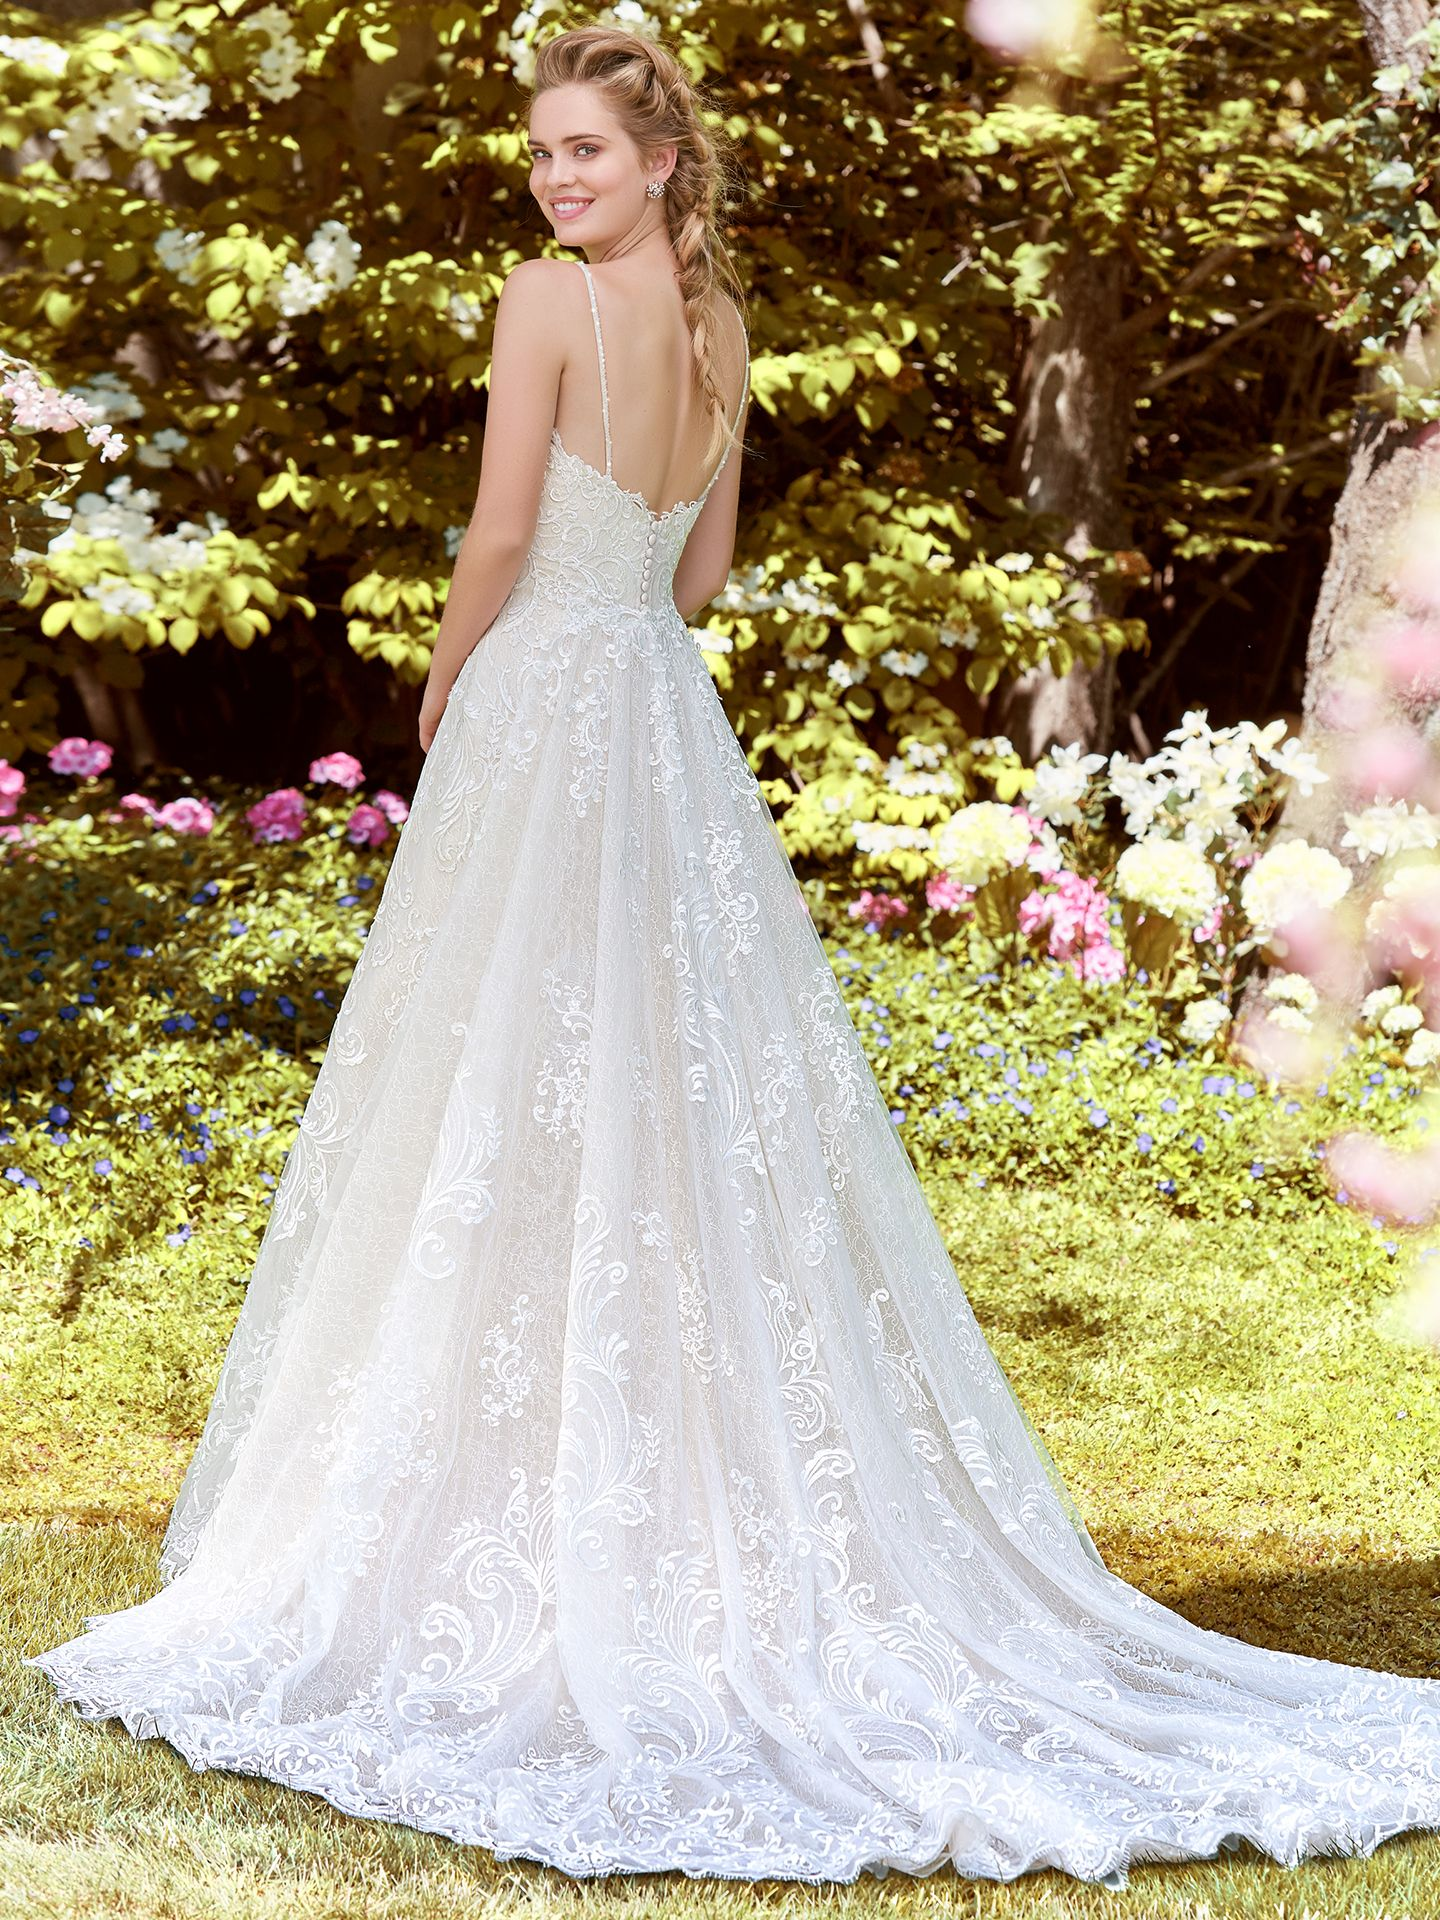 Swirls of romantic lace motifs dance over textured tulle in this fit-and-flare gown, complete with sweetheart neckline and beaded spaghetti straps. Finished with covered buttons over zipper closure. Detachable textured tulle train accented in sequins and lace sold separately. - The Latest Wedding Dress Trends for Engagement Season 2018